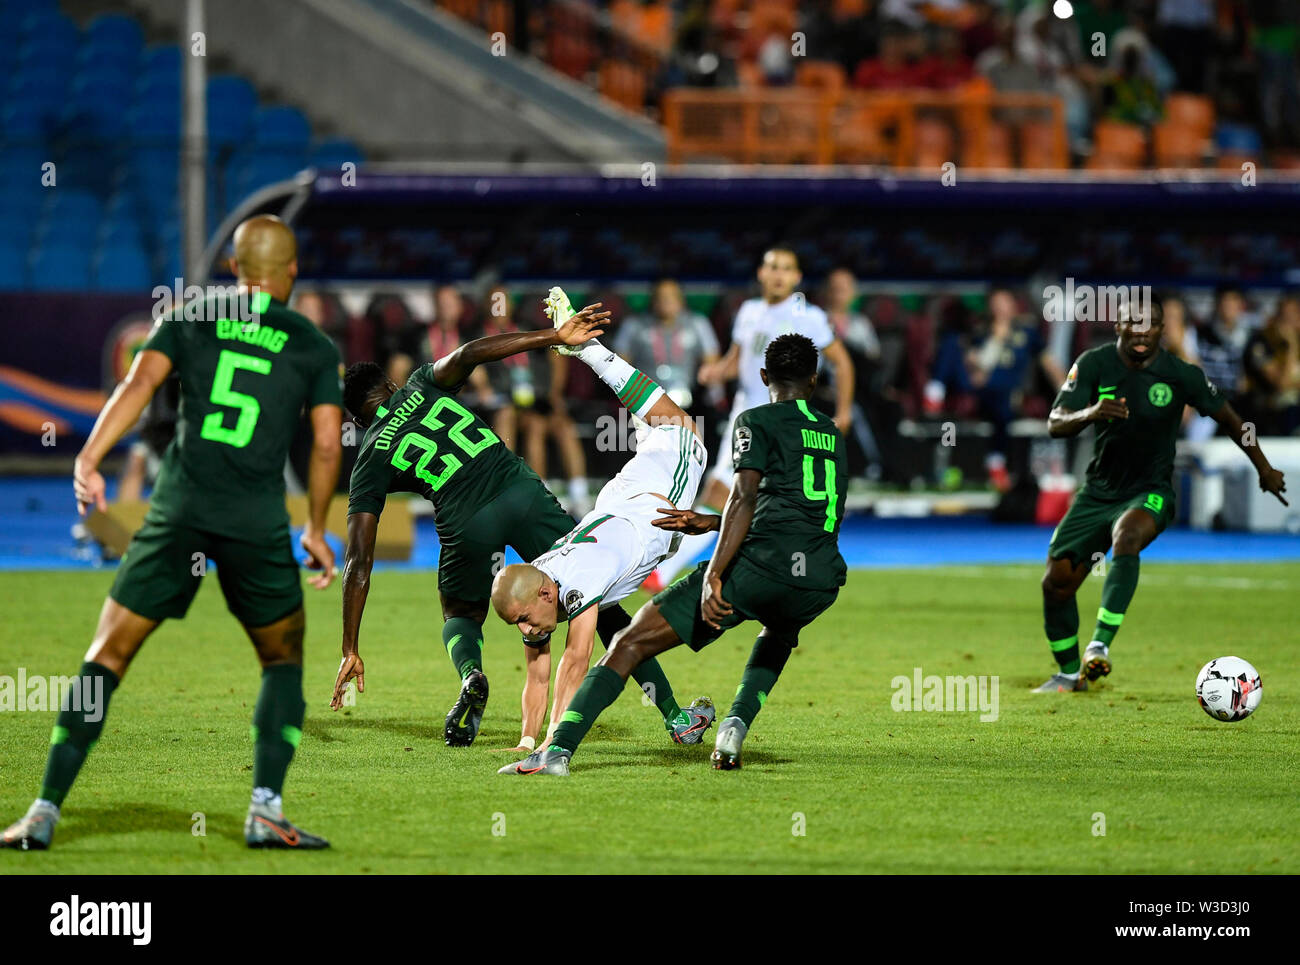 Cairo. 14th July, 2019. Sofiane Feghouli (3rd L) of Algeria competes with Kenneth Omeruo (2nd L) of Nigeria during the semifinal match between Algeria and Nigeria at the 2019 Africa Cup of Nations in Cairo, Egypt on July 14, 2019. Credit: Li Yan/Xinhua/Alamy Live News - Stock Image